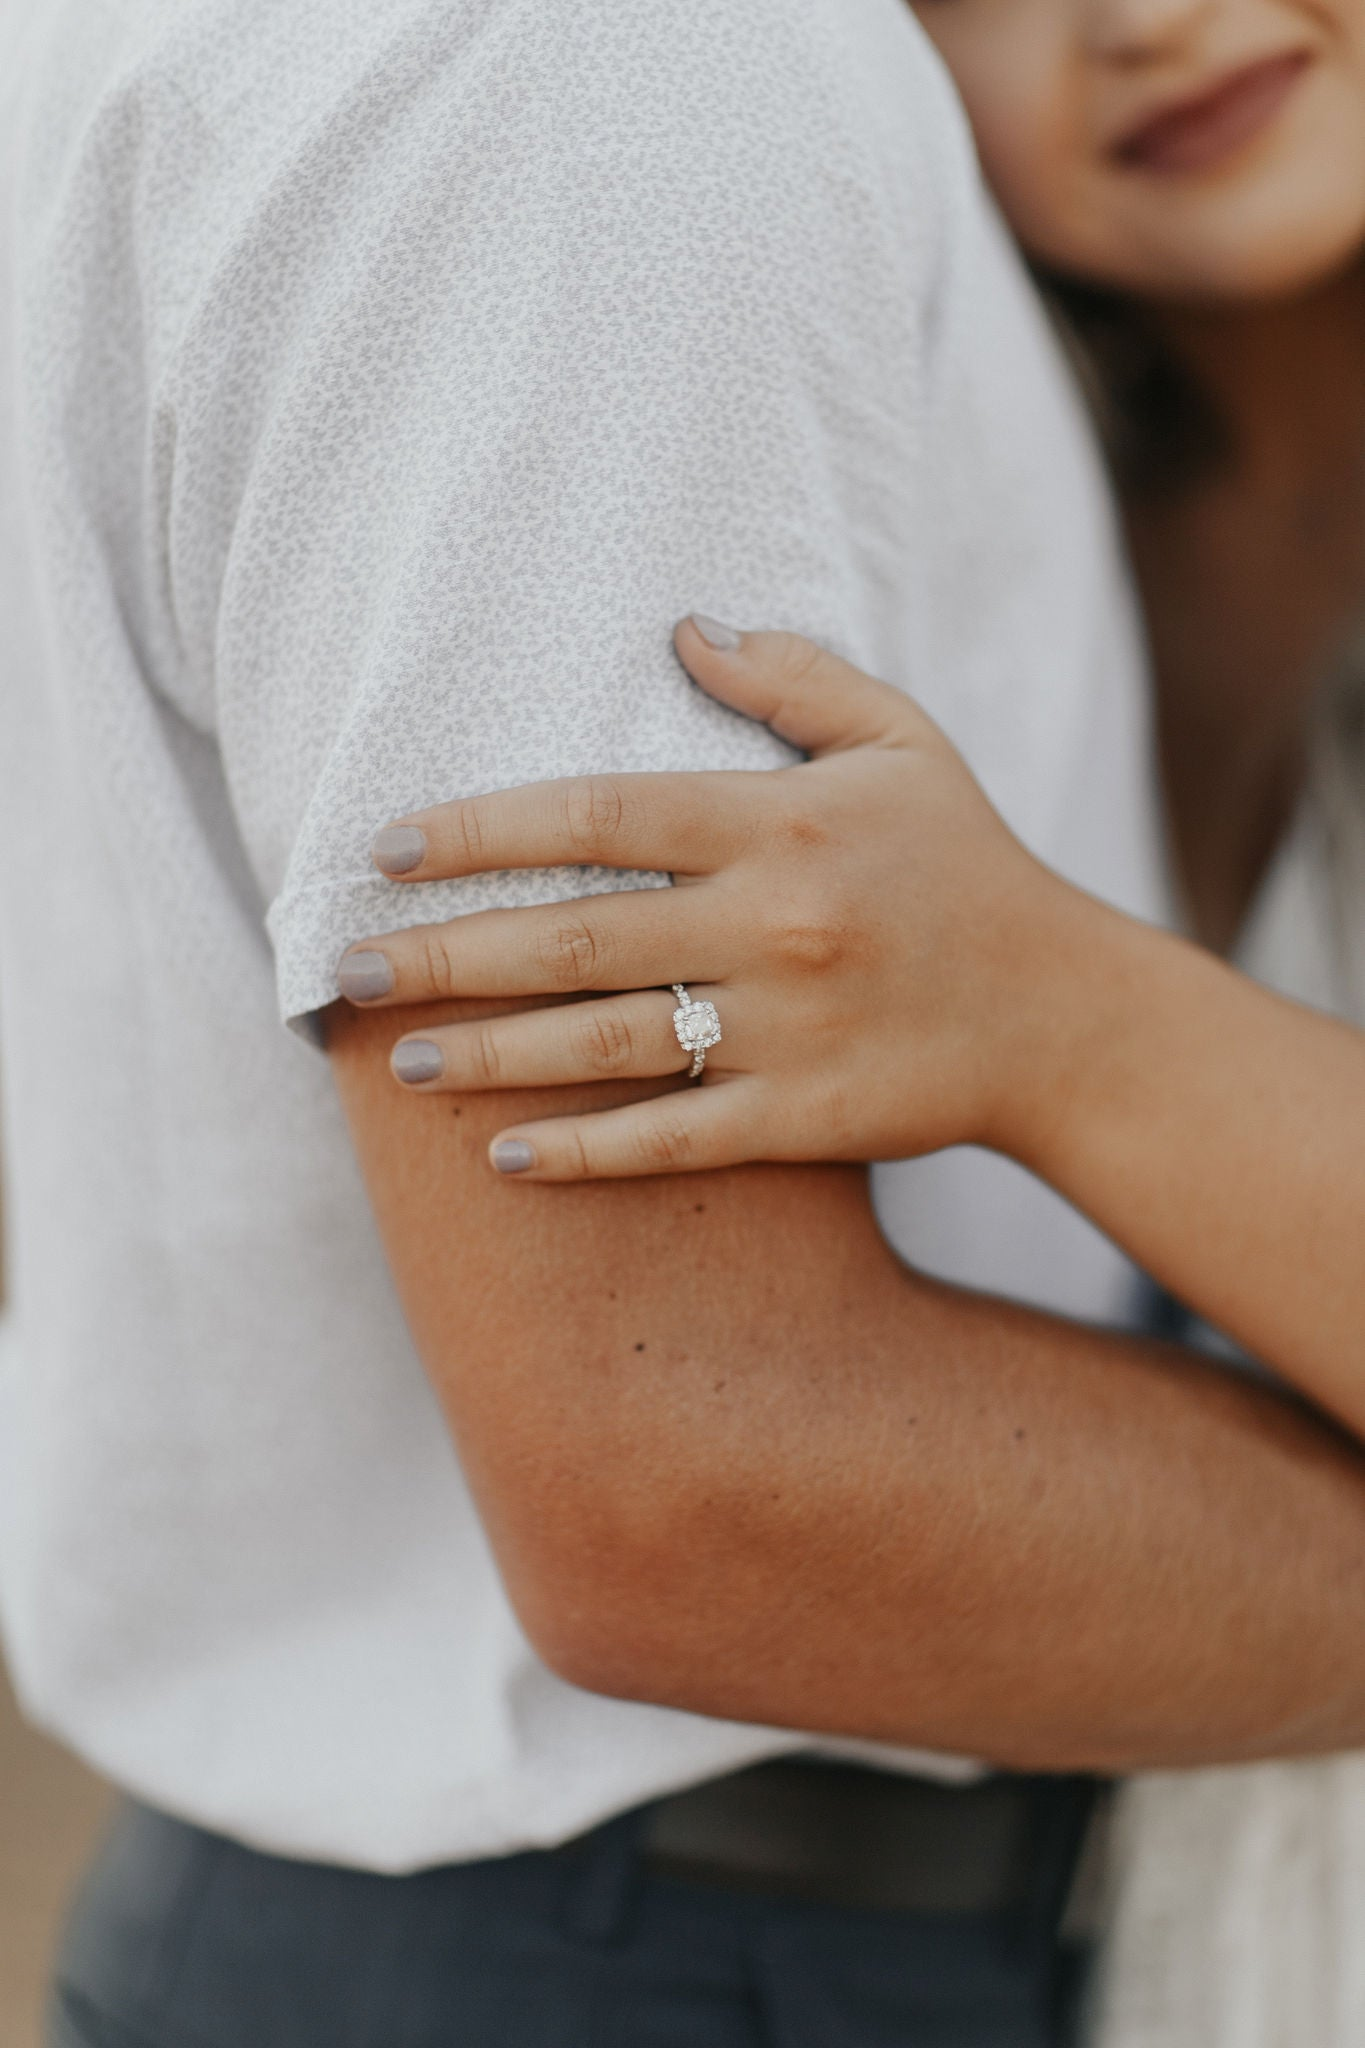 5 Tips For Newly Engaged Couples